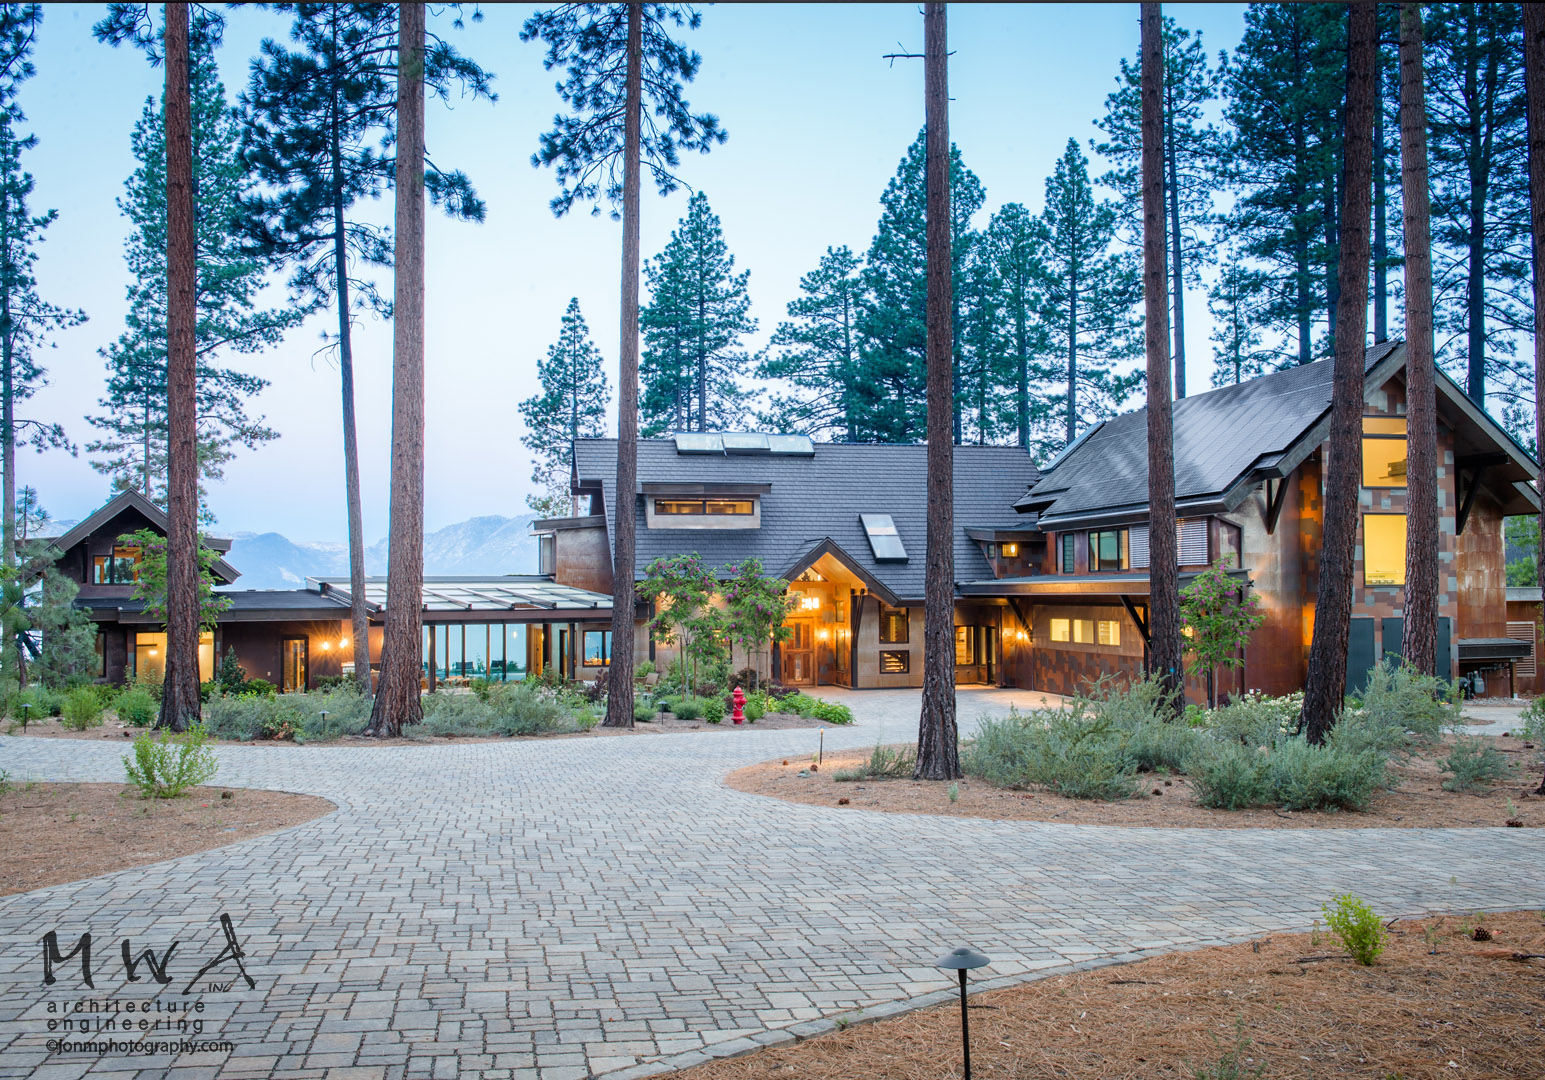 1000 images about lake tahoe 02 on pinterest green for Tahoe architects